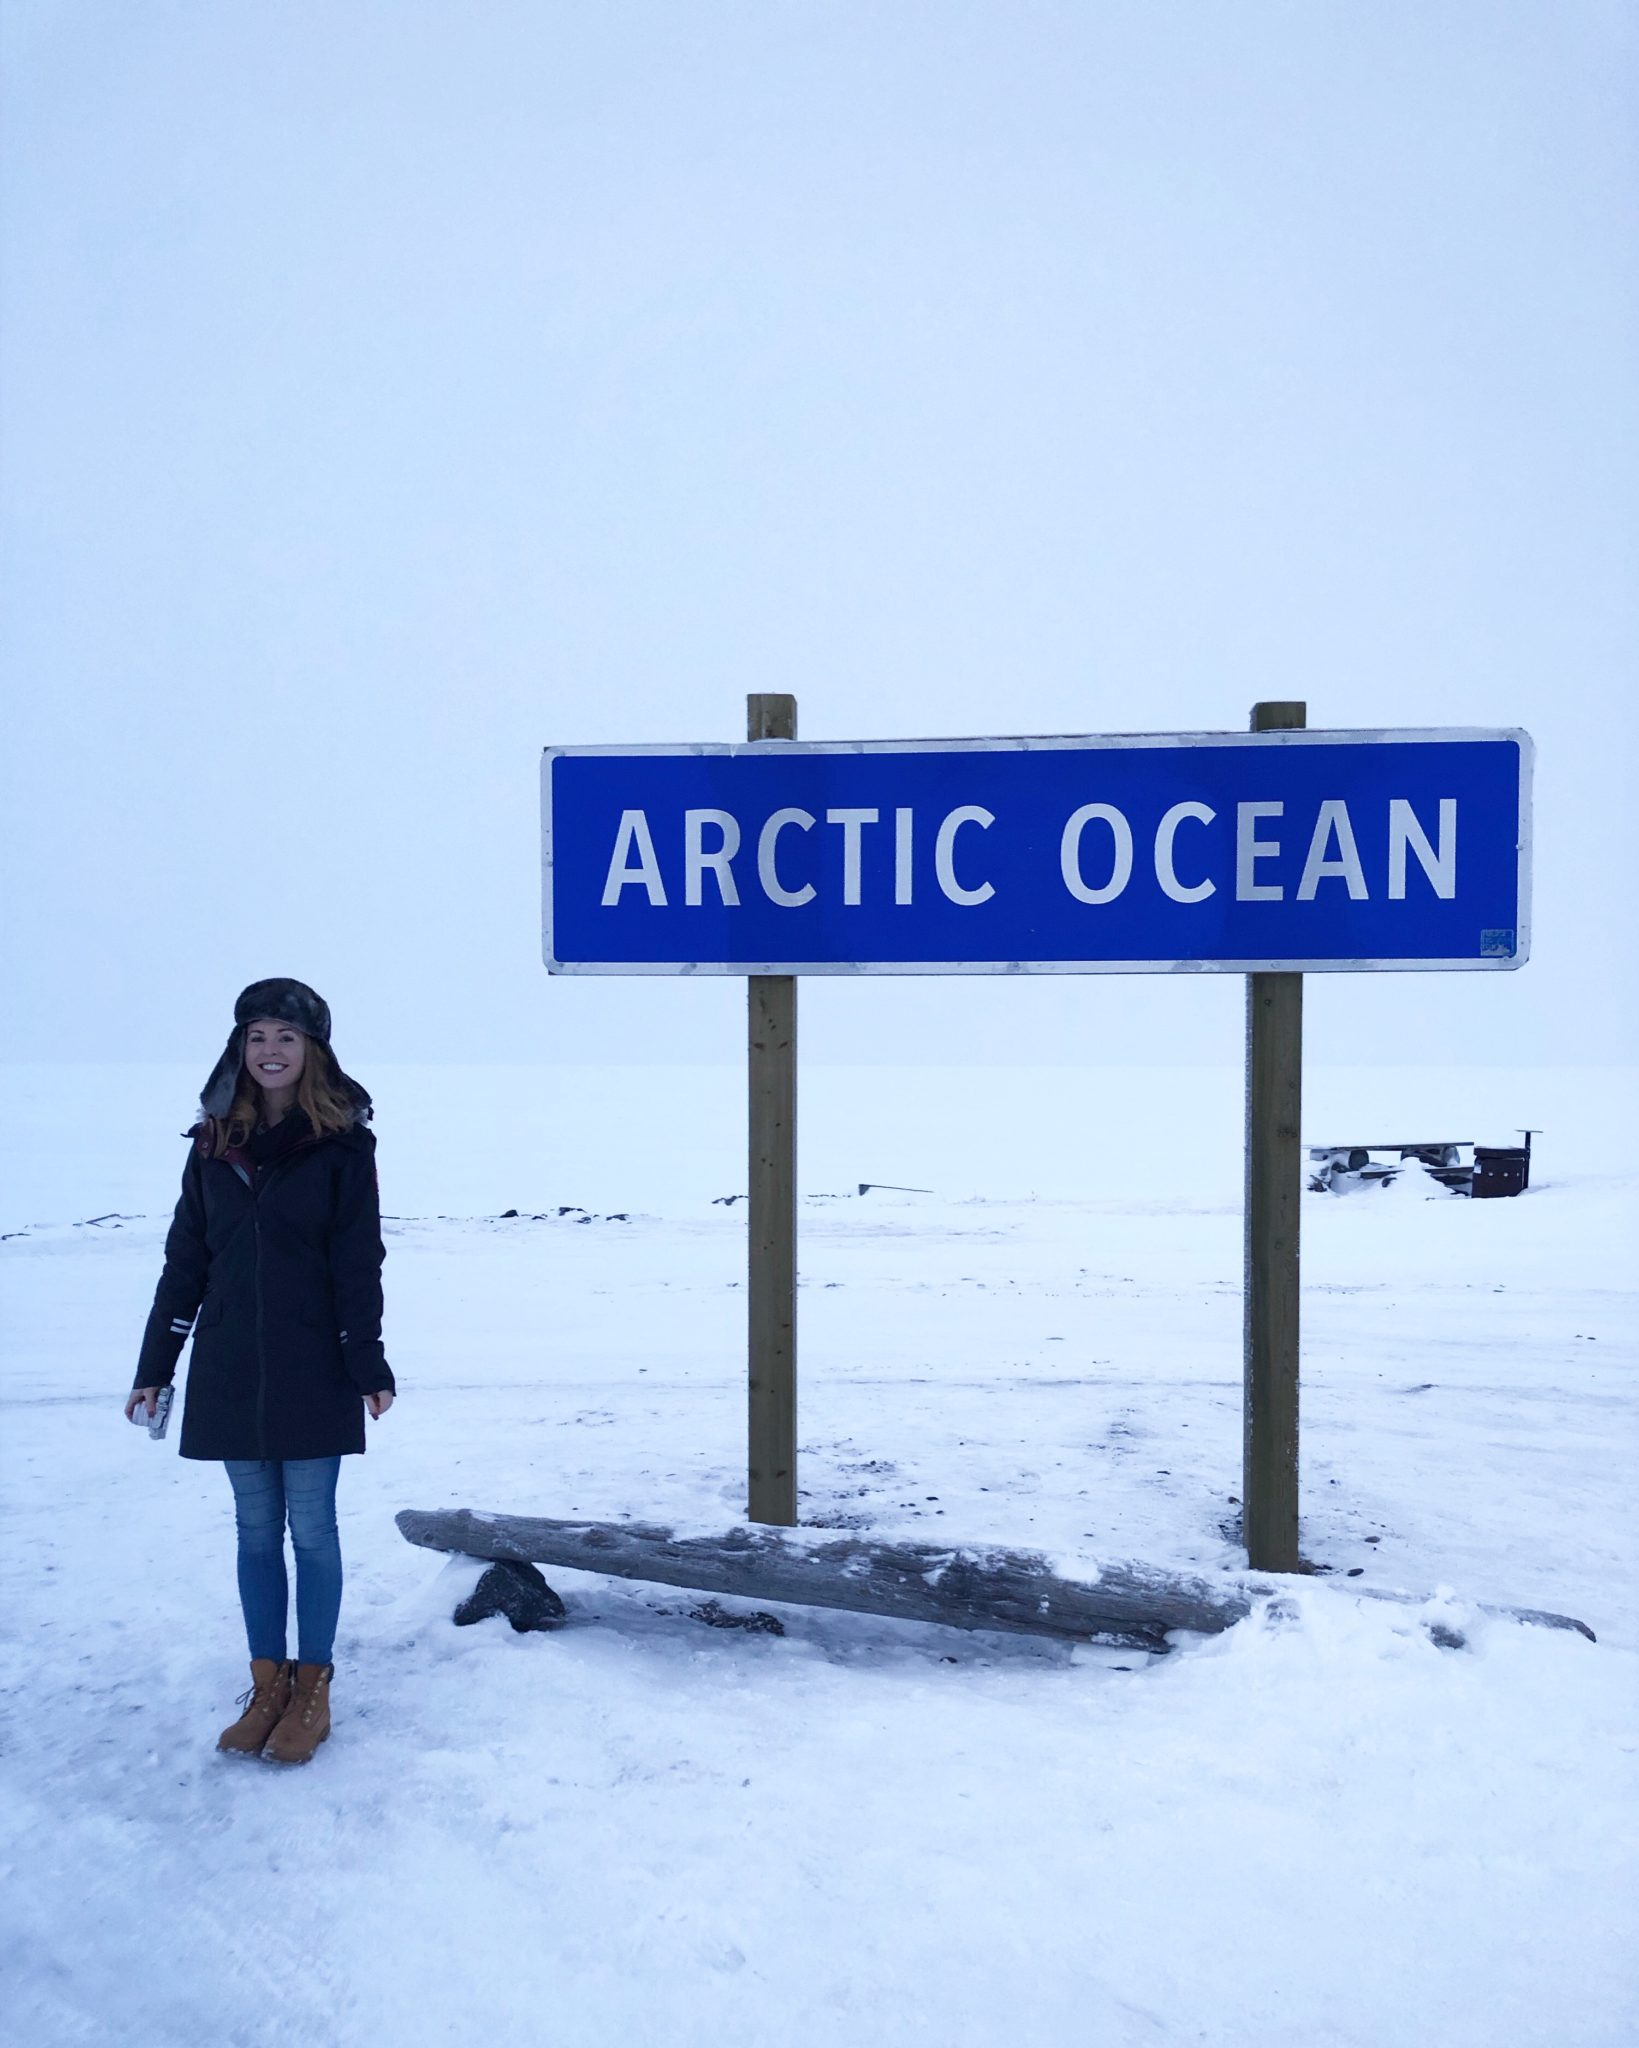 Road Trip to the Arctic | WORLD OF WANDERLUST